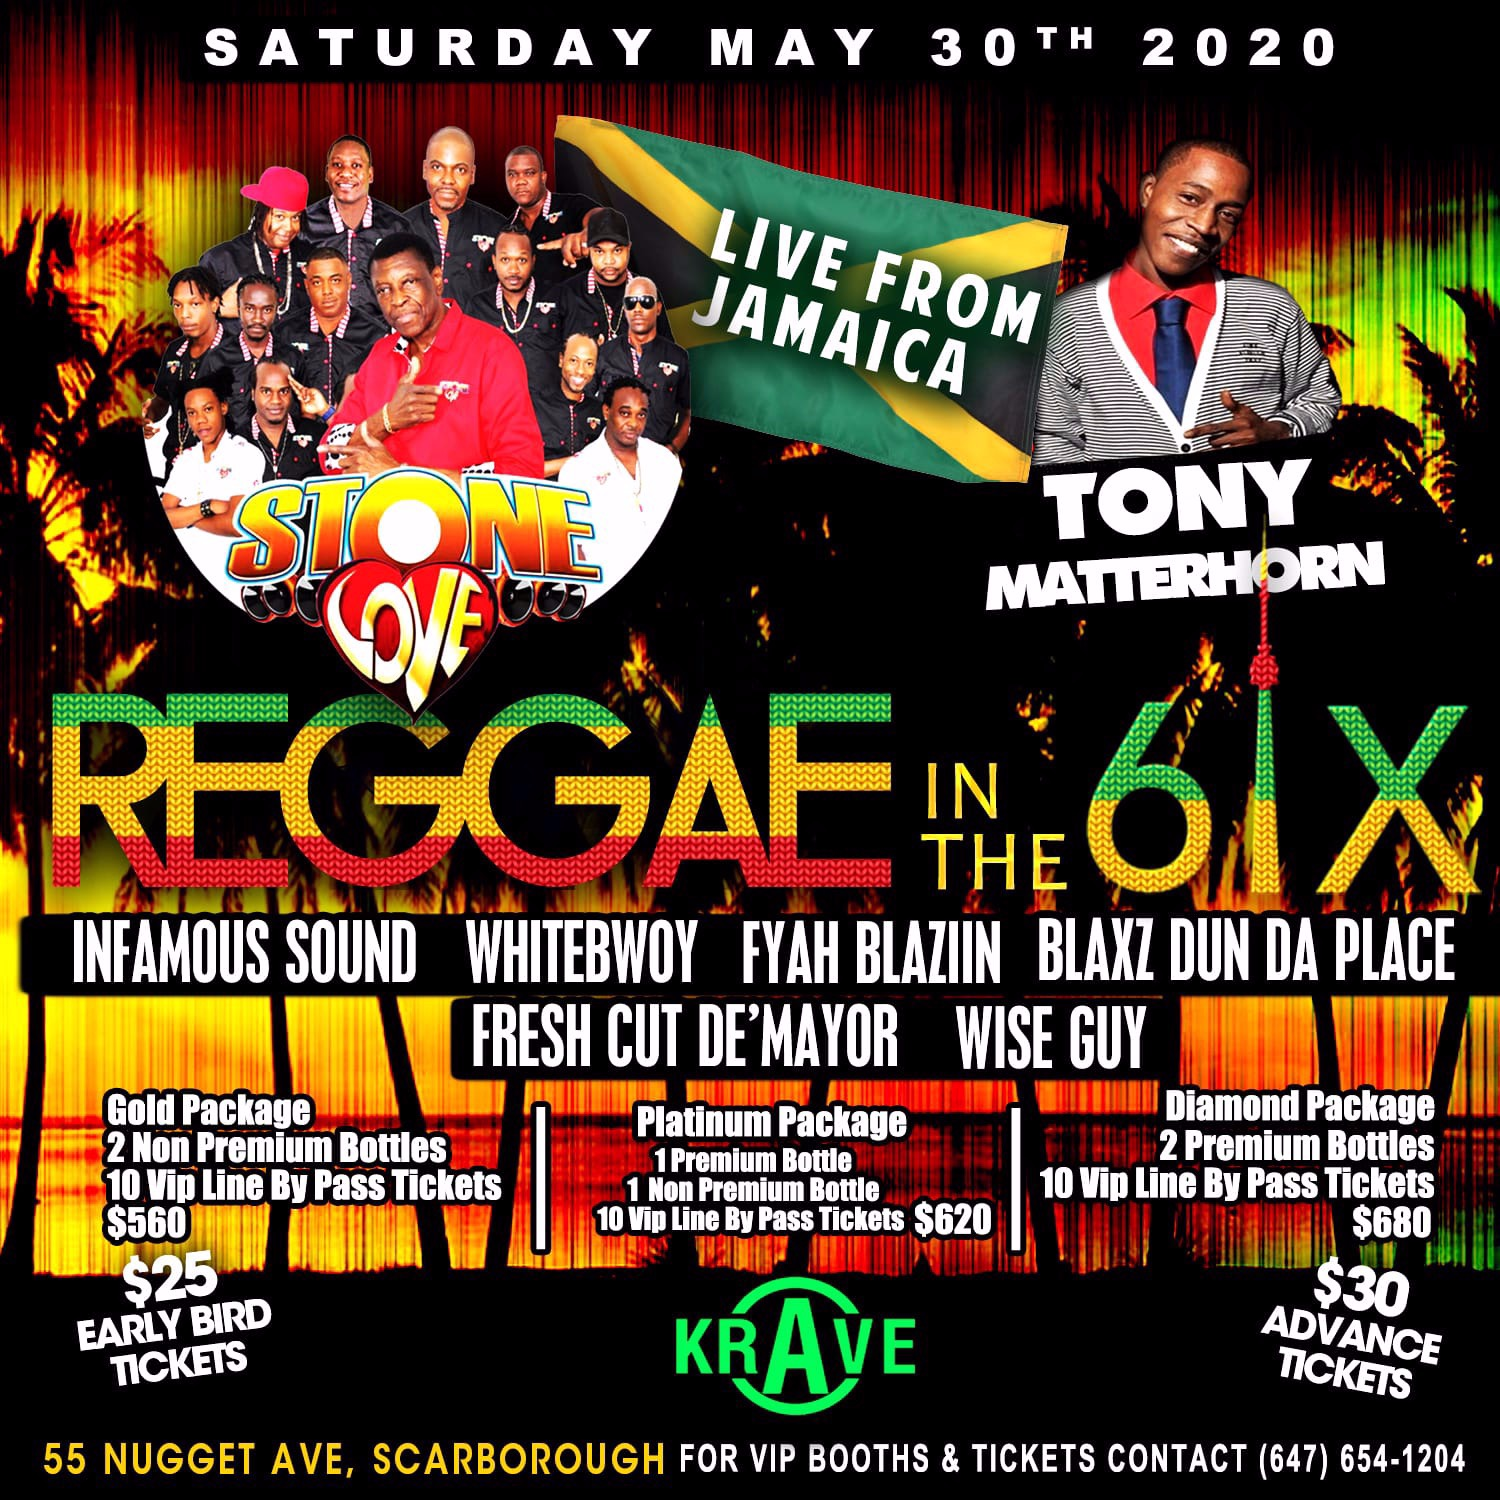 REGGAE IN THE 6IX FEAT. STONE LOVE & TONY MATTERHORN